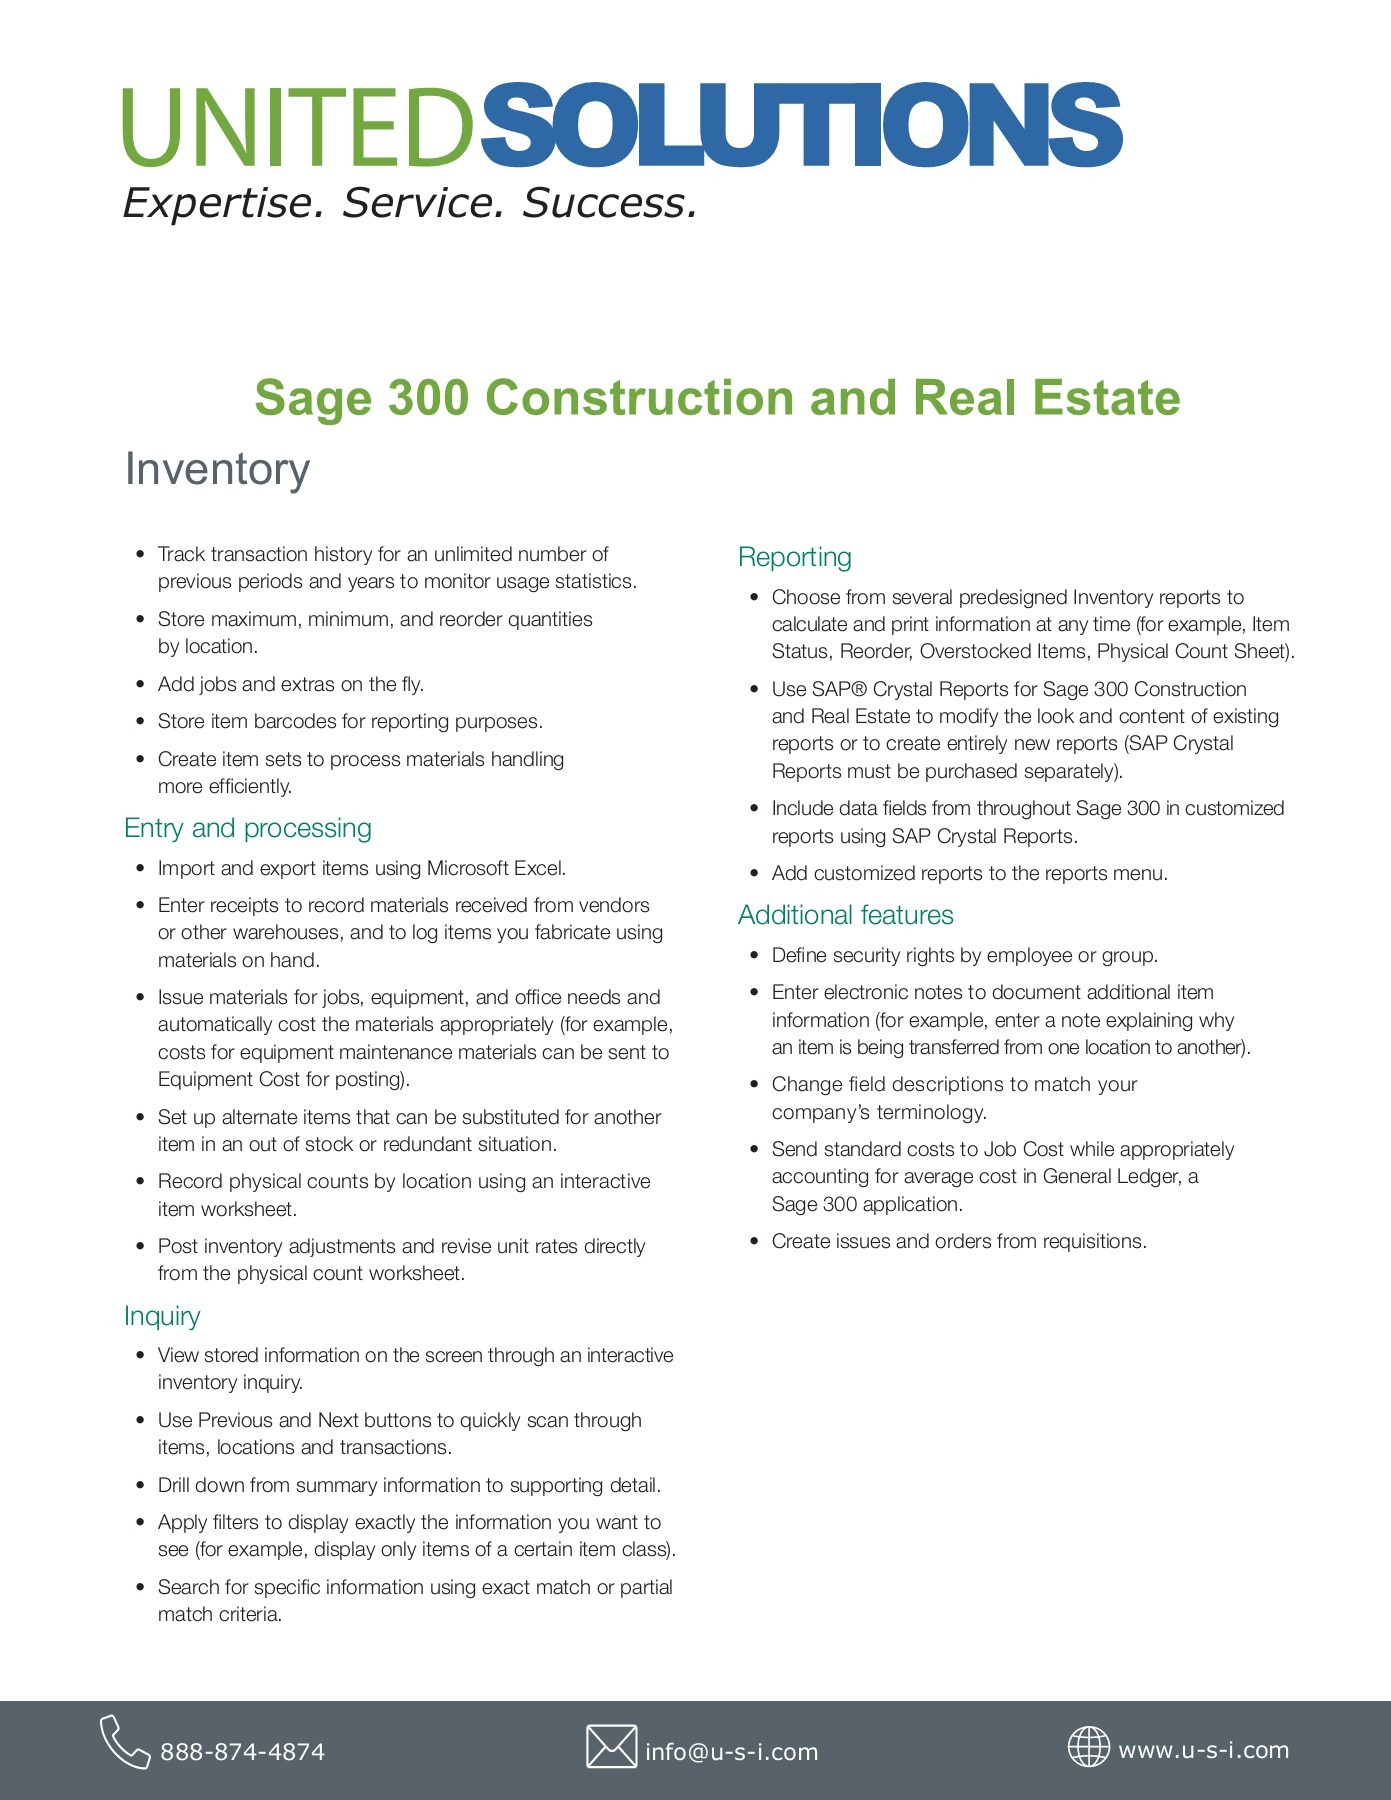 Sage 300 CRE Inventory | United Solutions